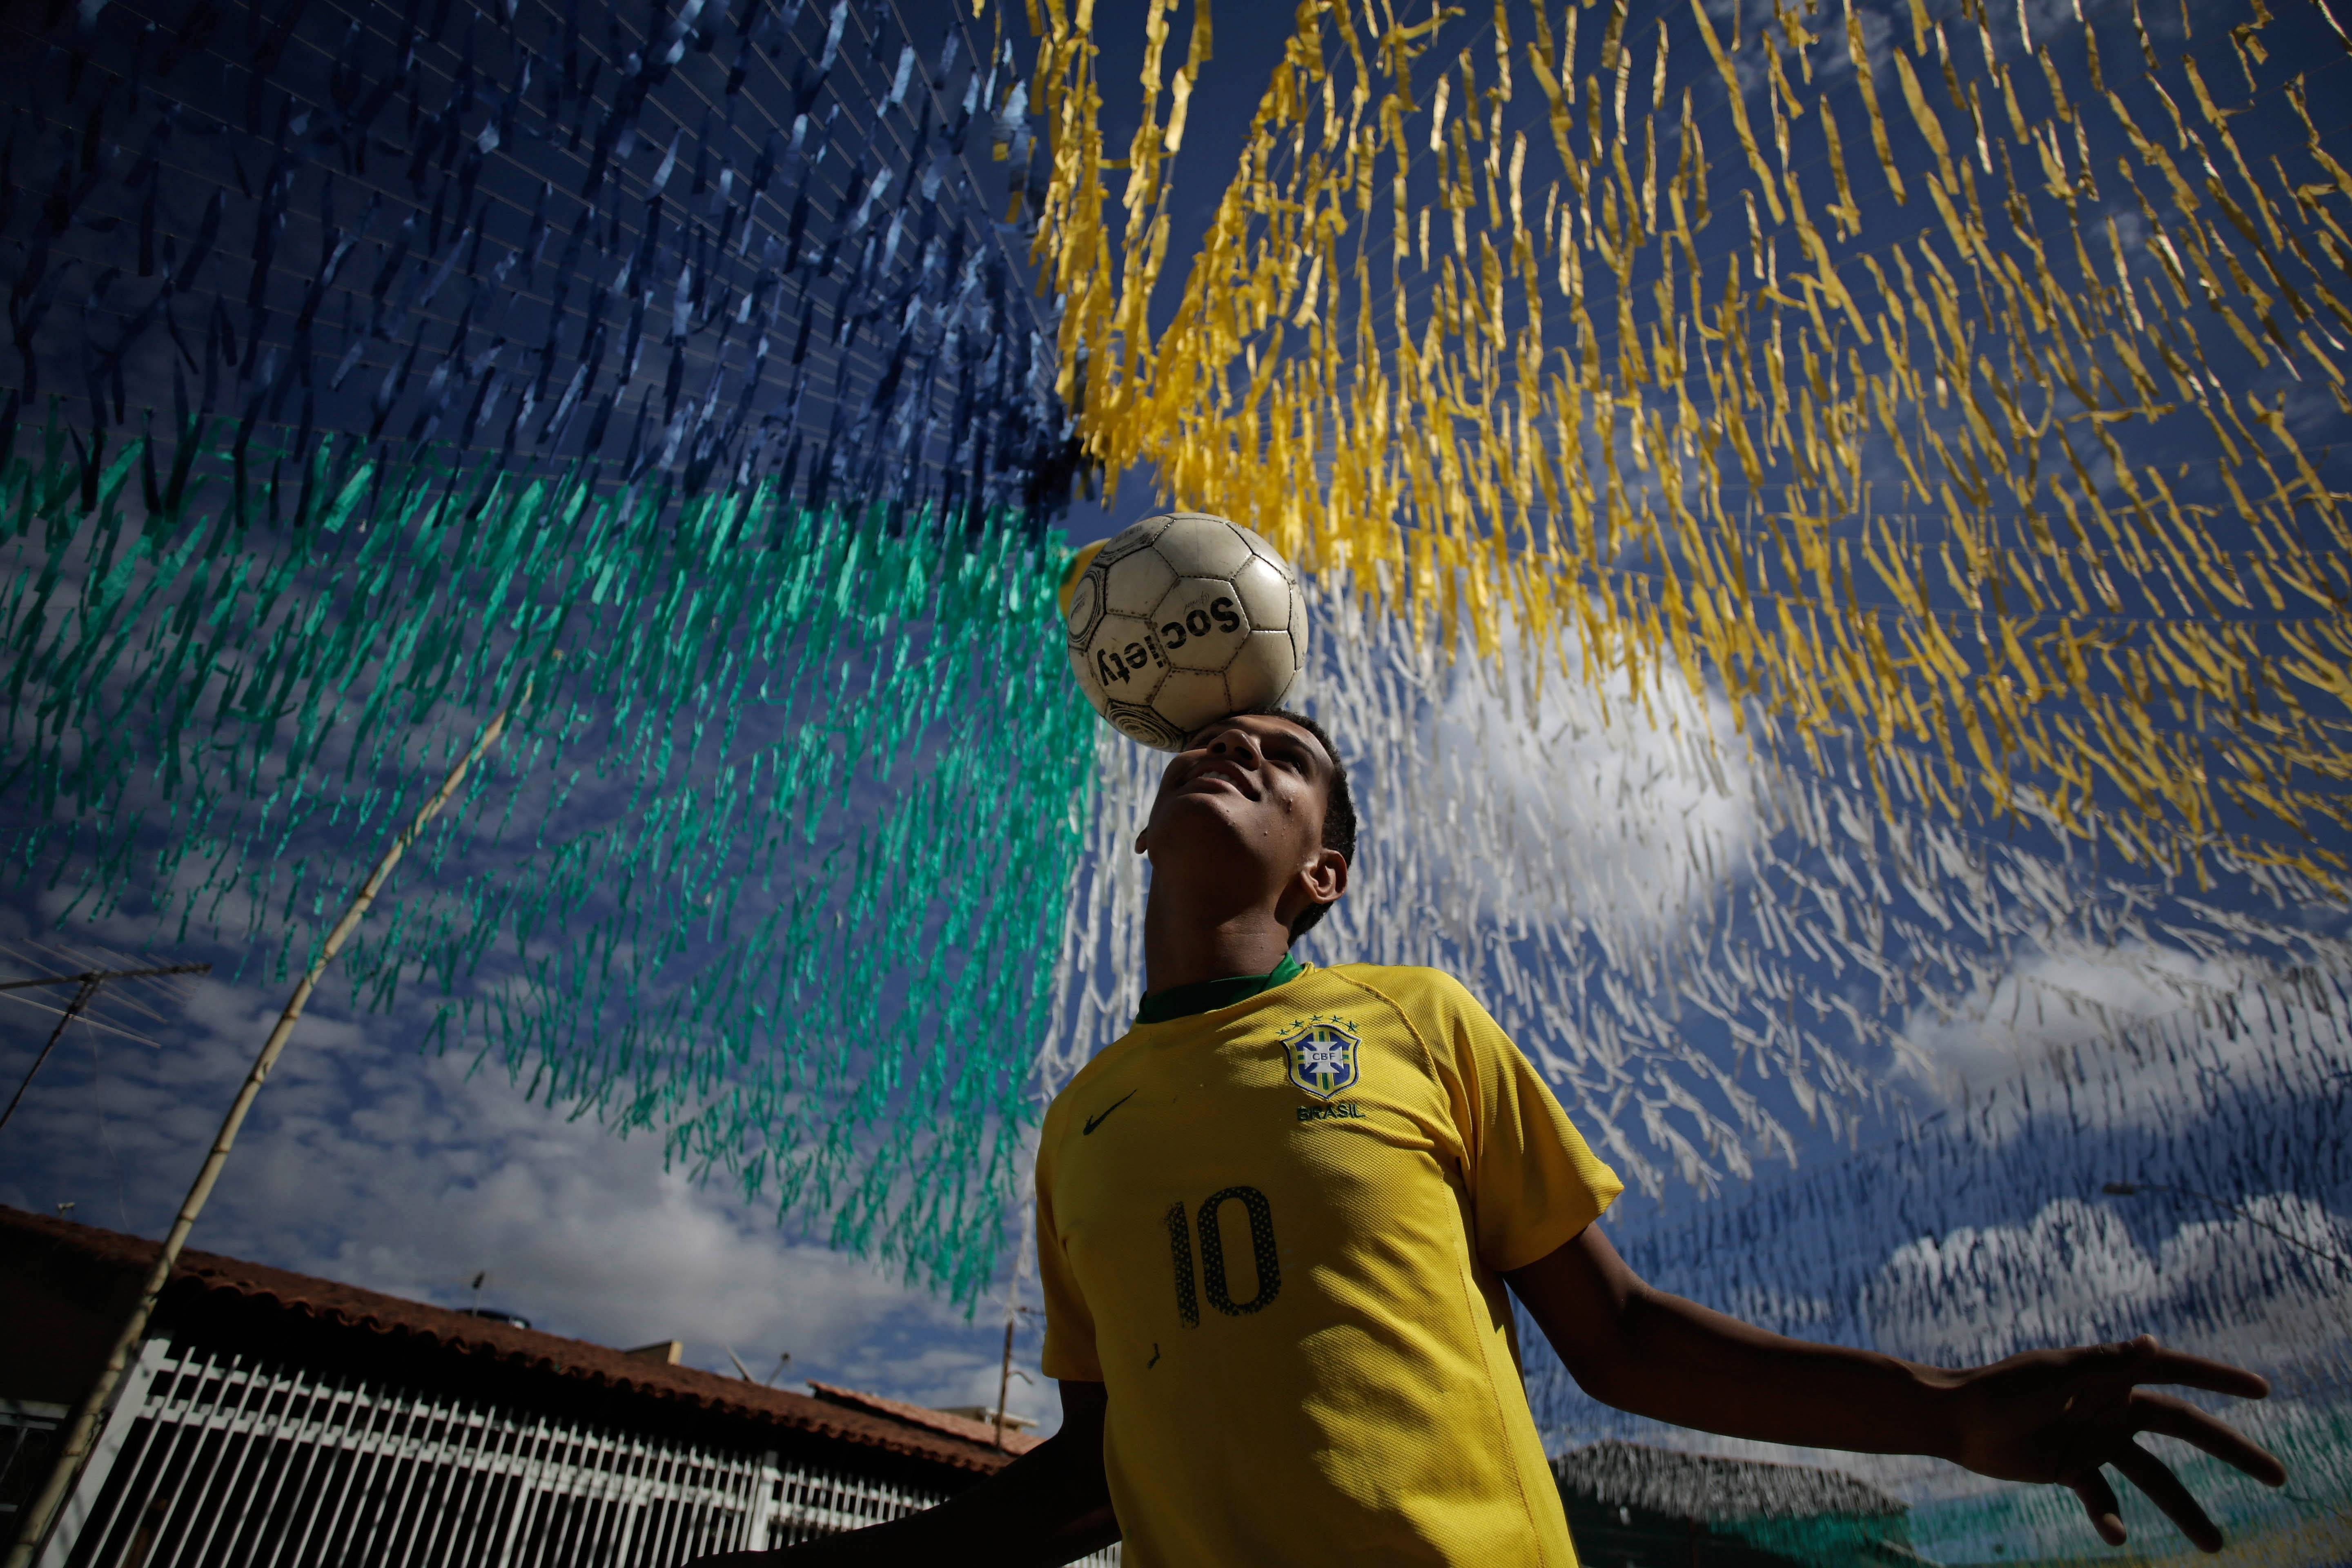 In this June 4 photo, Joao Paulo, 16, plays ball in a street decorated for the upcoming World Cup in the Ceilandia suburb of Brasilia, Brazil. The international soccer tournament is set to begin next week.